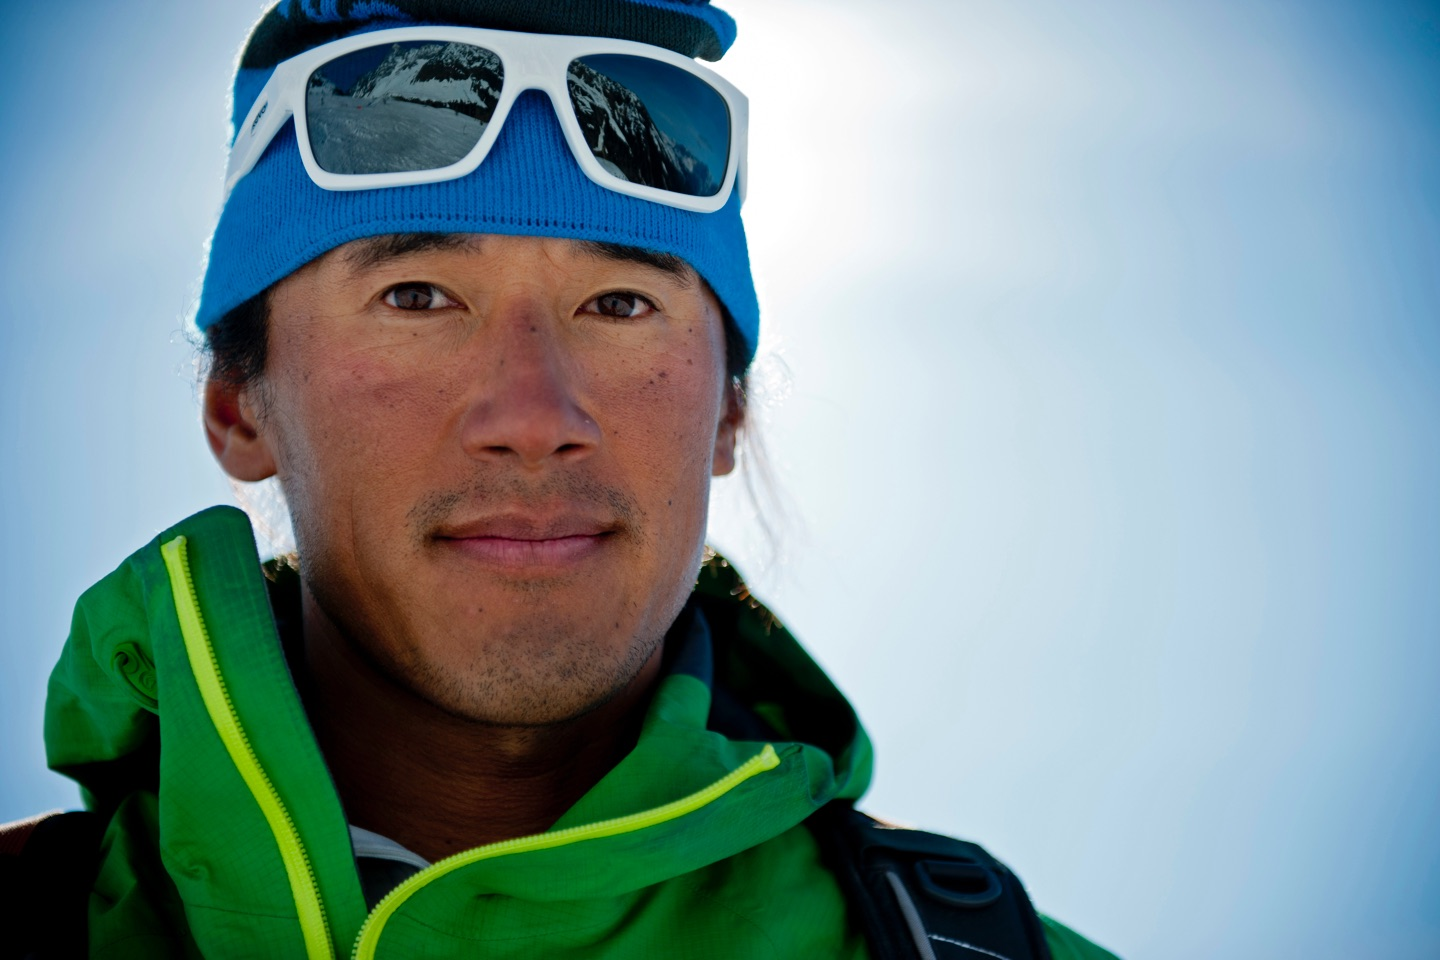 A photo of Jimmy Chin